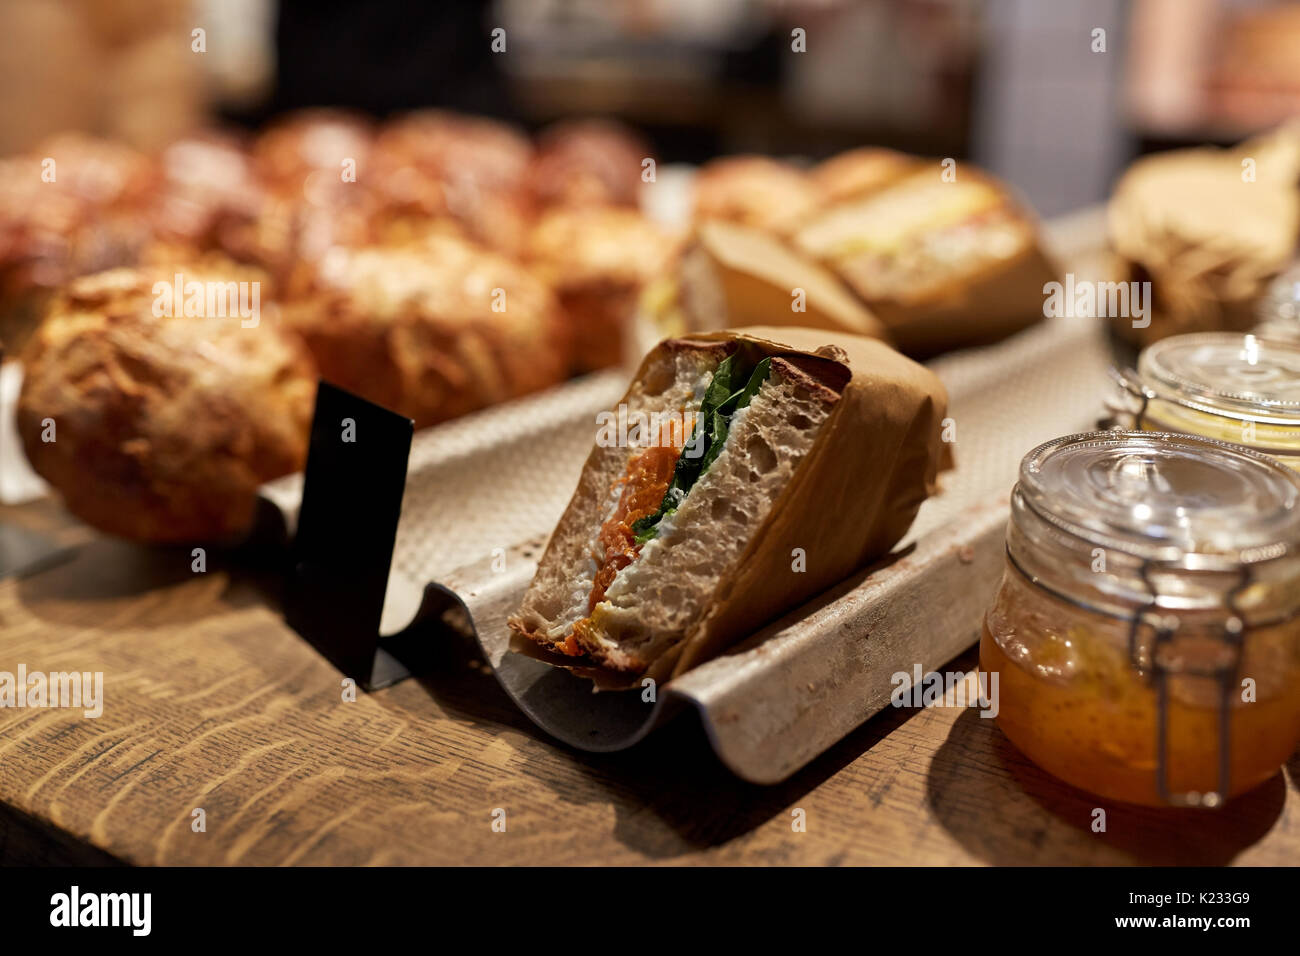 craft sandwich with price tag at grocery store - Stock Image